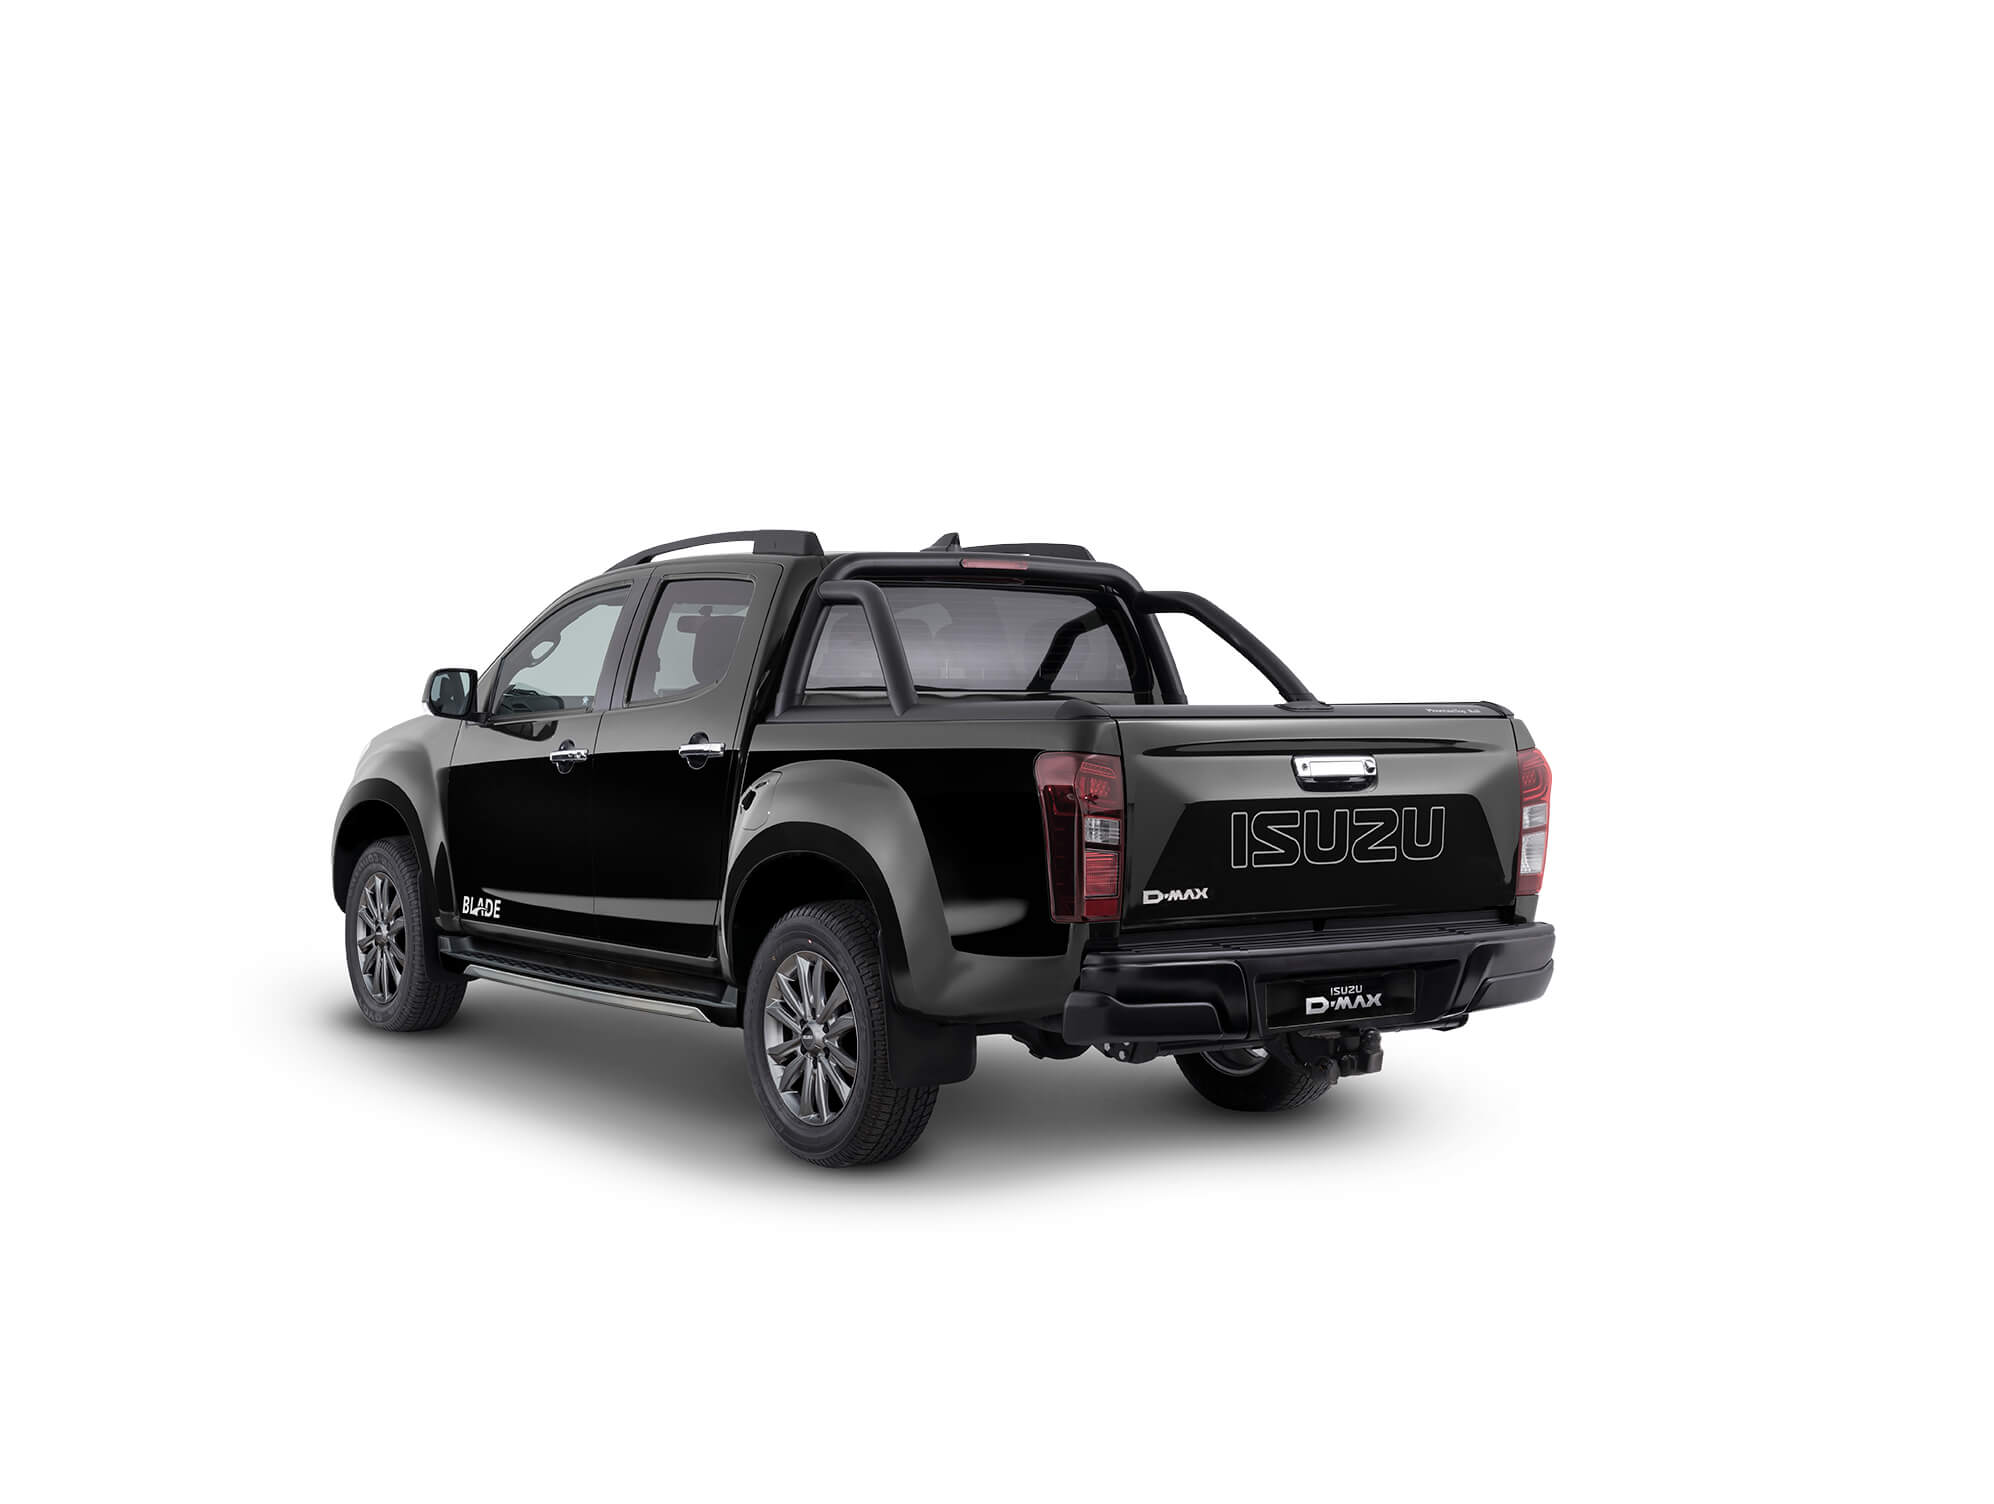 Rear view of the Isuzu D-Max blade in black